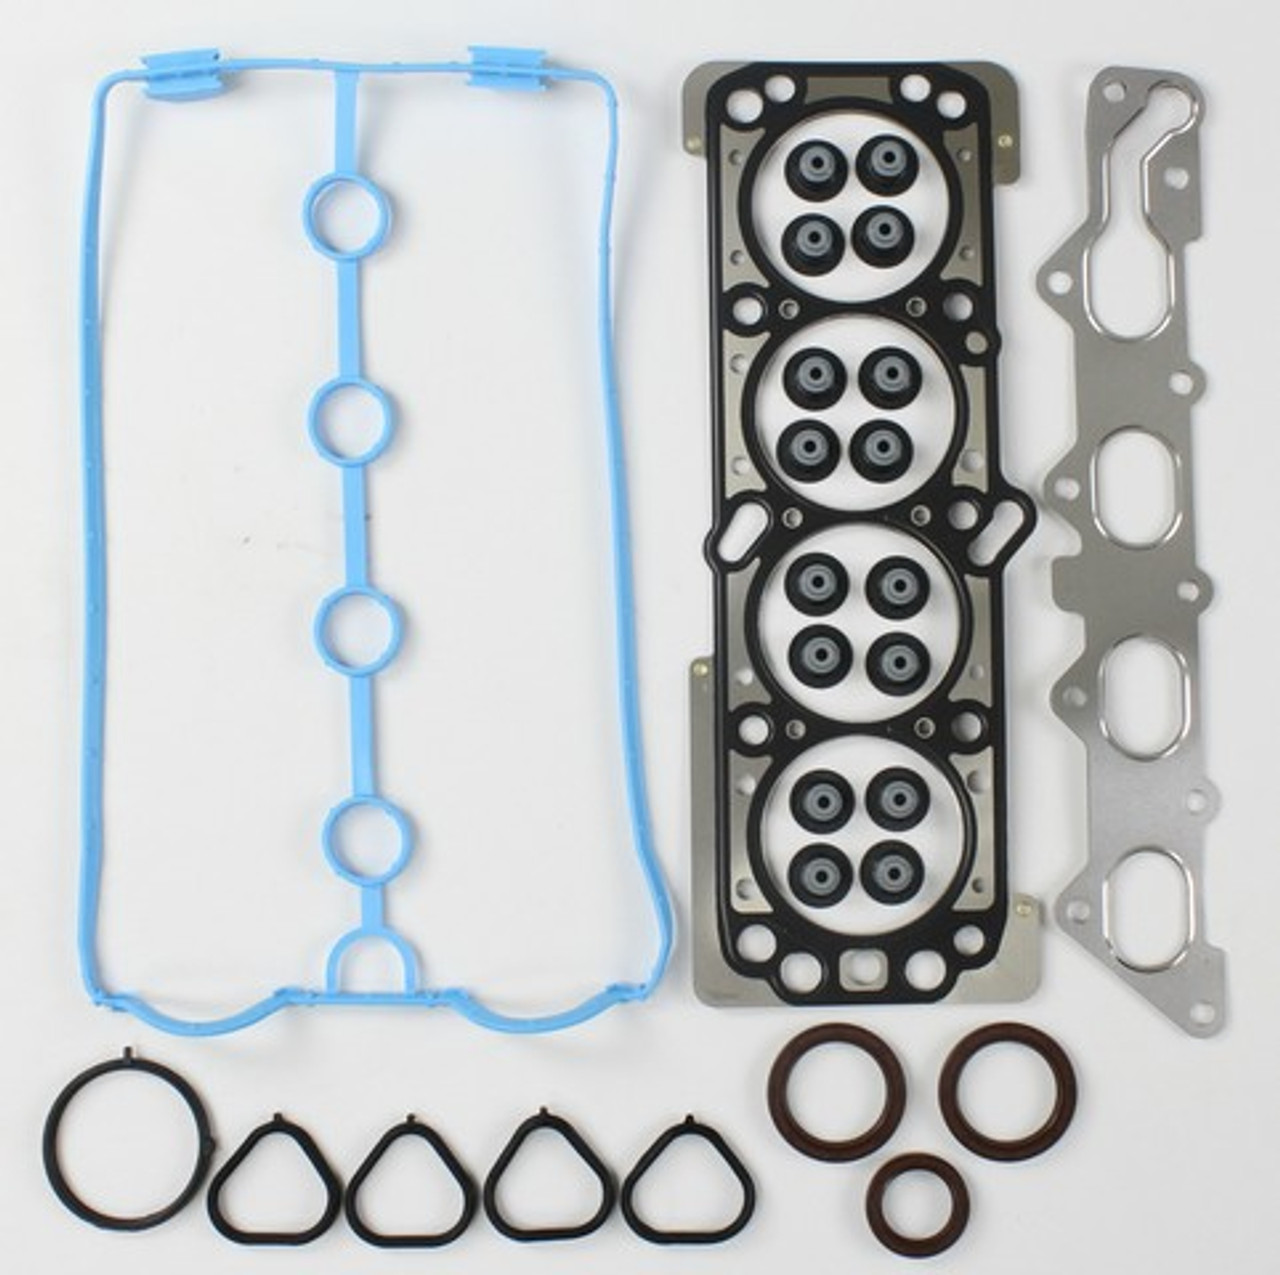 Head Gasket Set 1.6L 2008 Chevrolet Aveo5 - HGS335.6